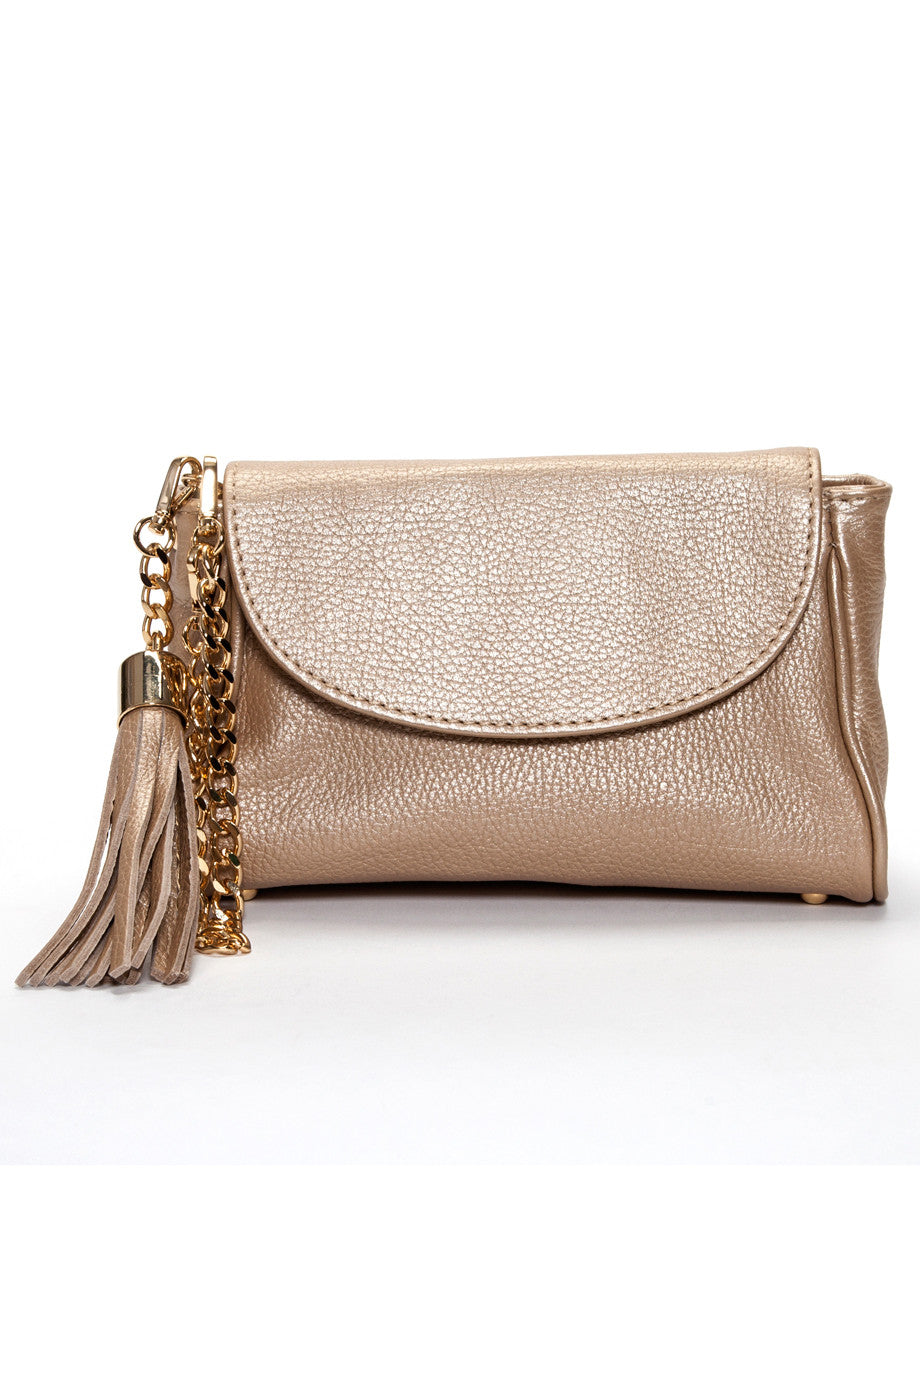 matte gold italian leather handmade handbag with tassel front view